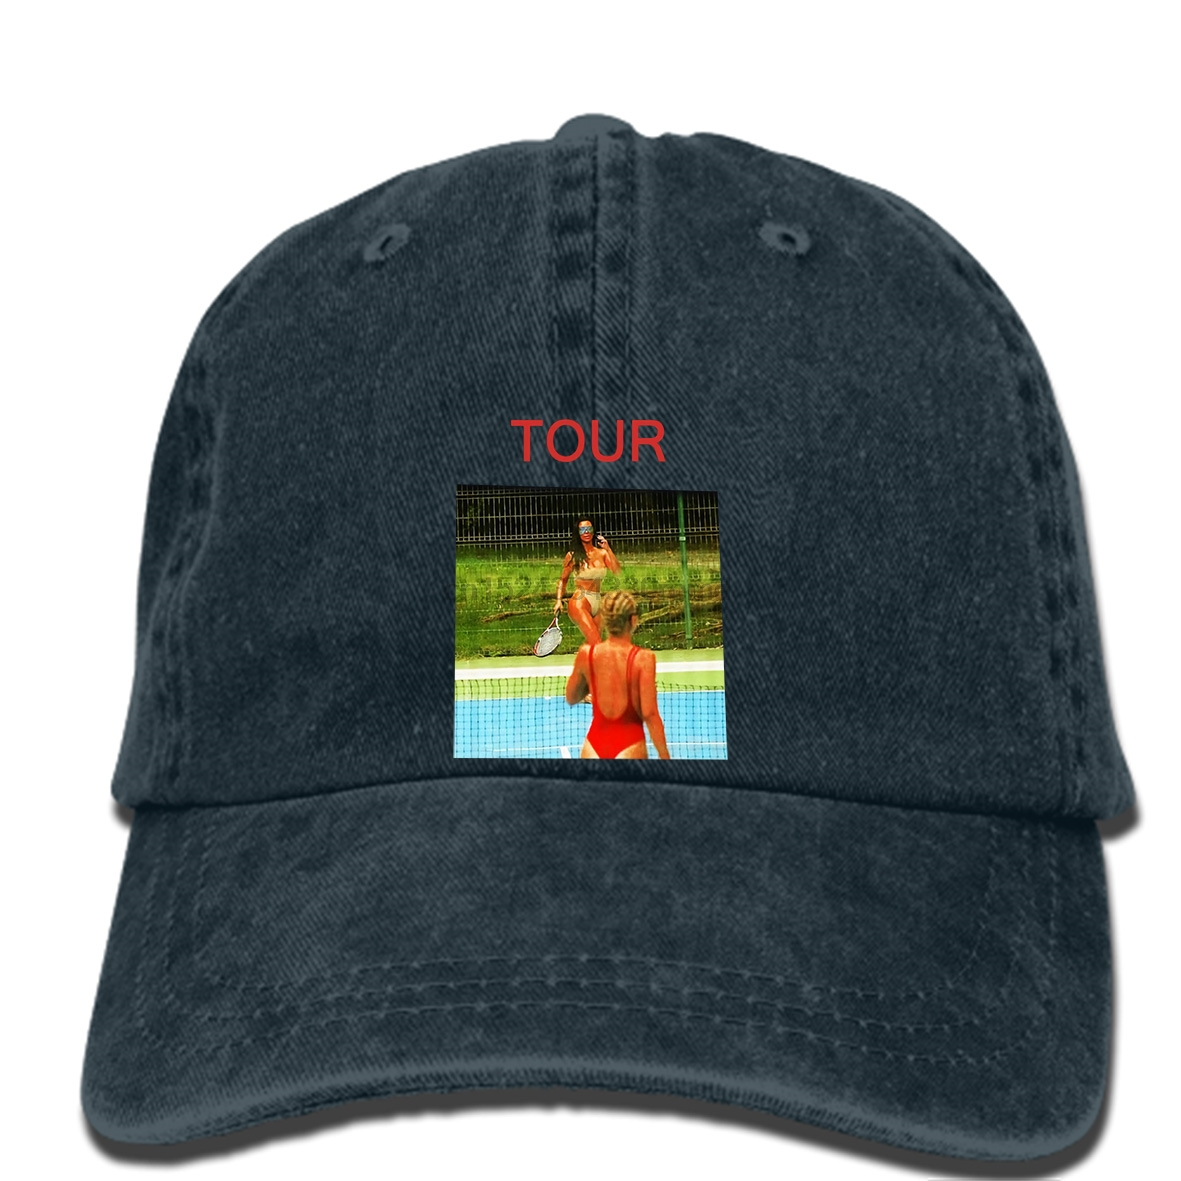 cdff3ac35bff4 hip hop Baseball caps SAINT PABLO TOUR MERCH KIM K TENNIS hat TLOP KANYE  WEST USA